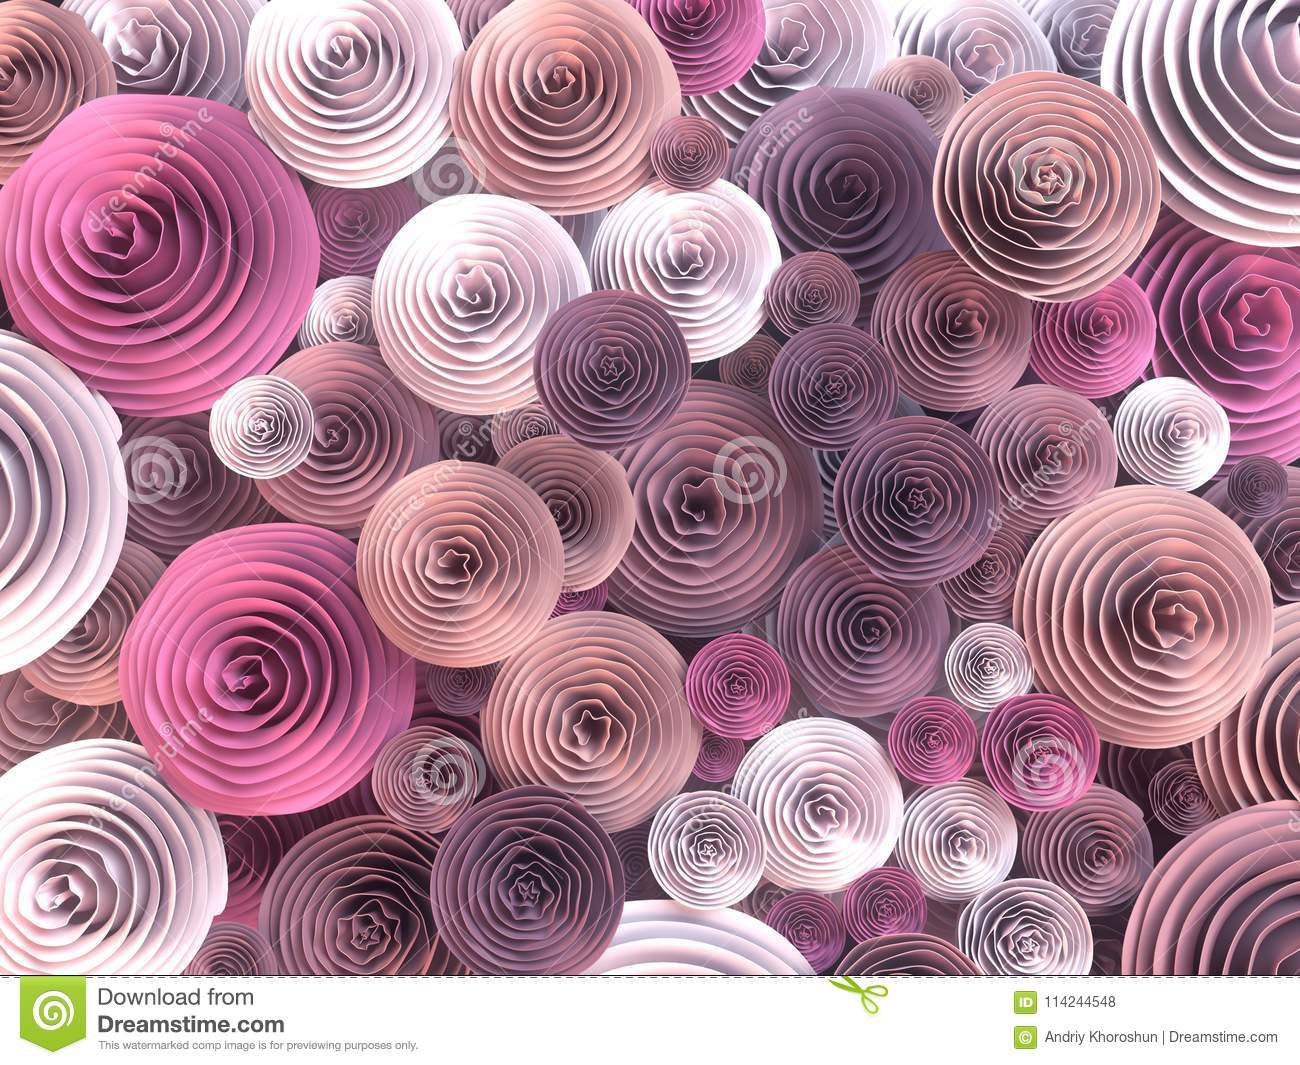 Abstract Illustration Of Paper Crafted Quilling Flowers With